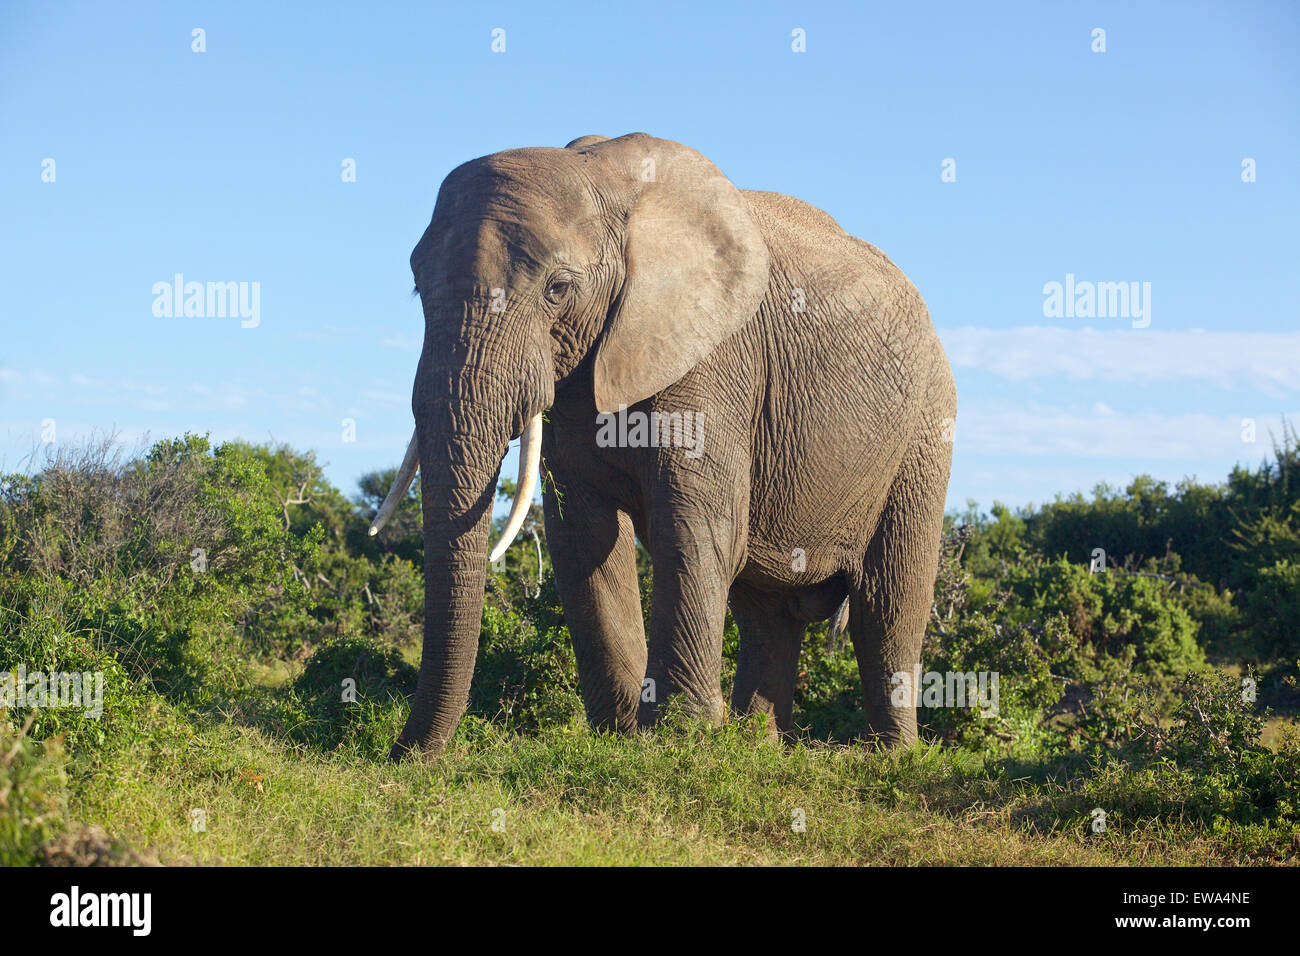 Close encounter with an elephant in Addo Elephant National Park, South Africa. - Stock Image